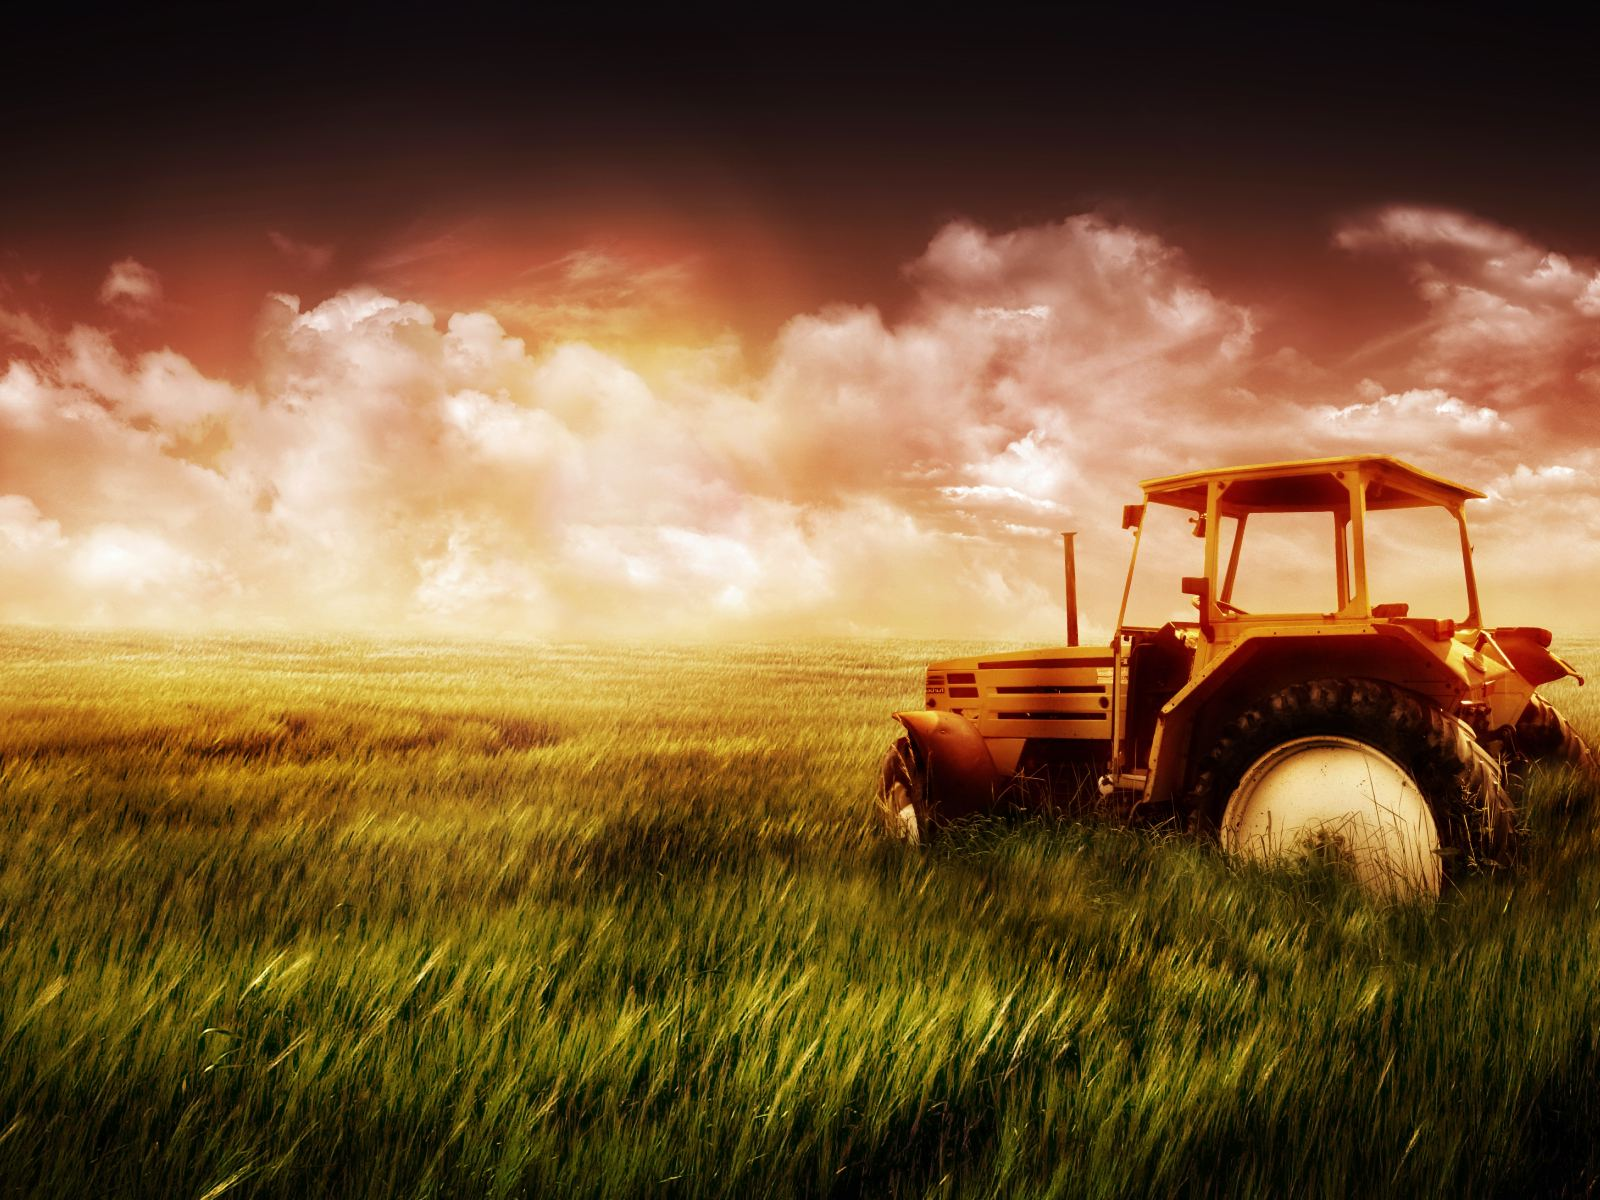 Farm Tractor Wallpaper Vehicles - tractor wallpapers